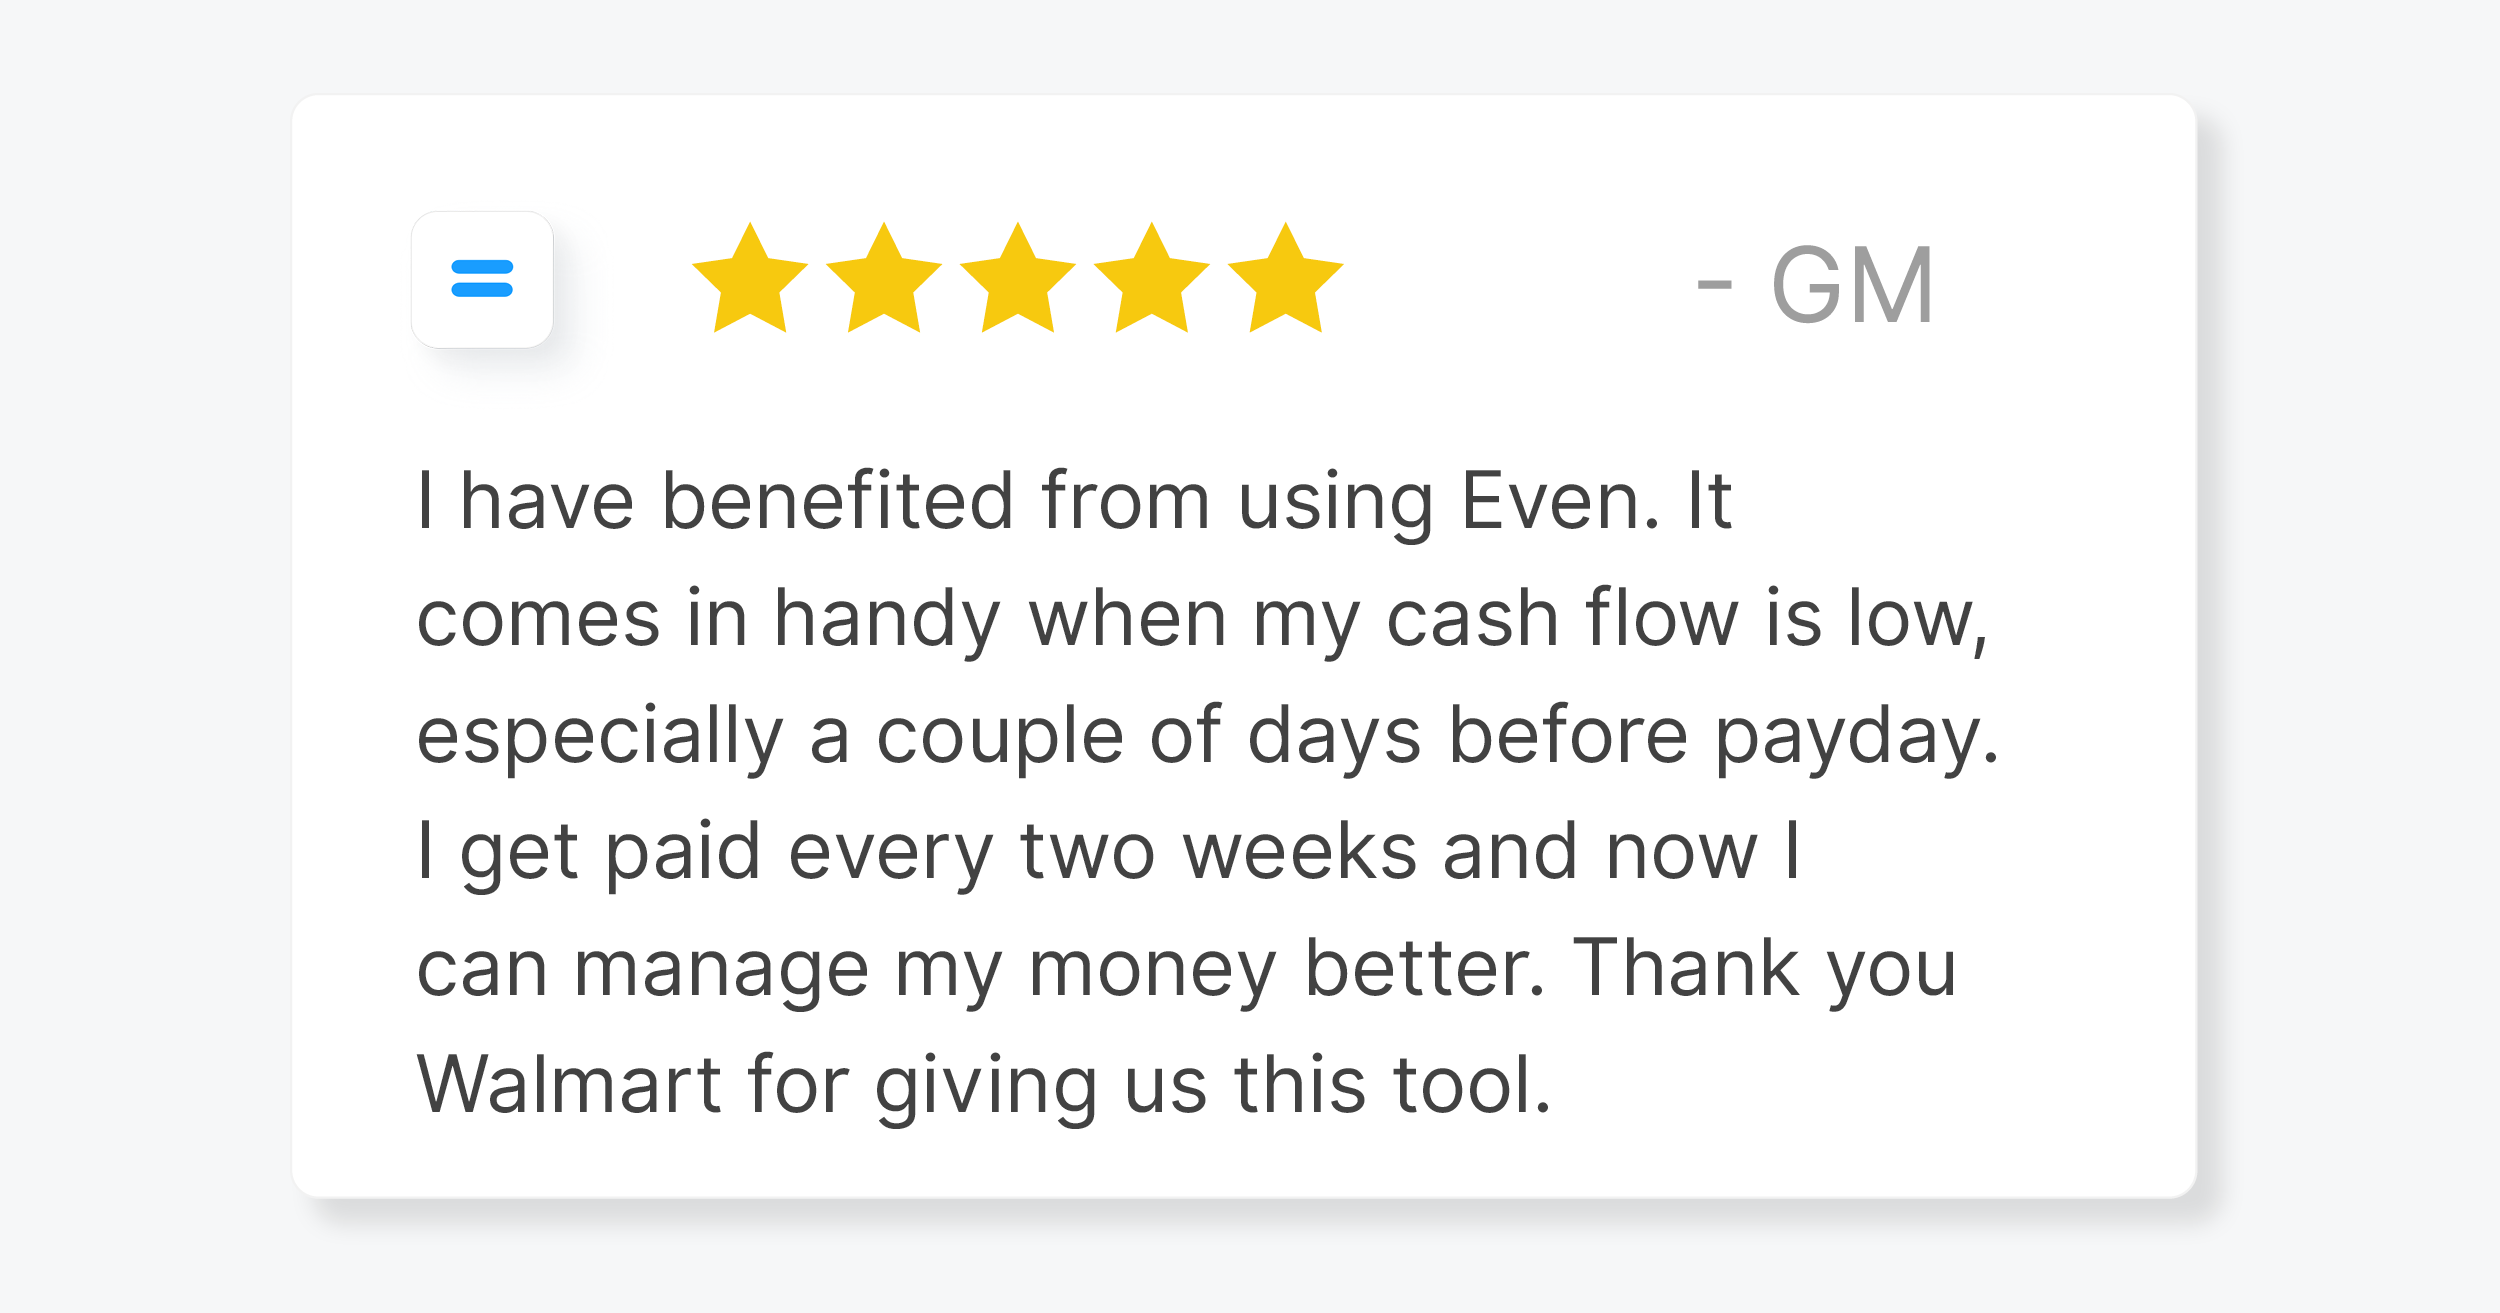 """A quote from an Even member, saying: """"""""I have benefited from using Even. It comes in handy when my cash flow is low, especially a couple of days before payday. I get paid every two weeks and now I can manage my money better. Thank you Walmart for giving us this tool."""""""